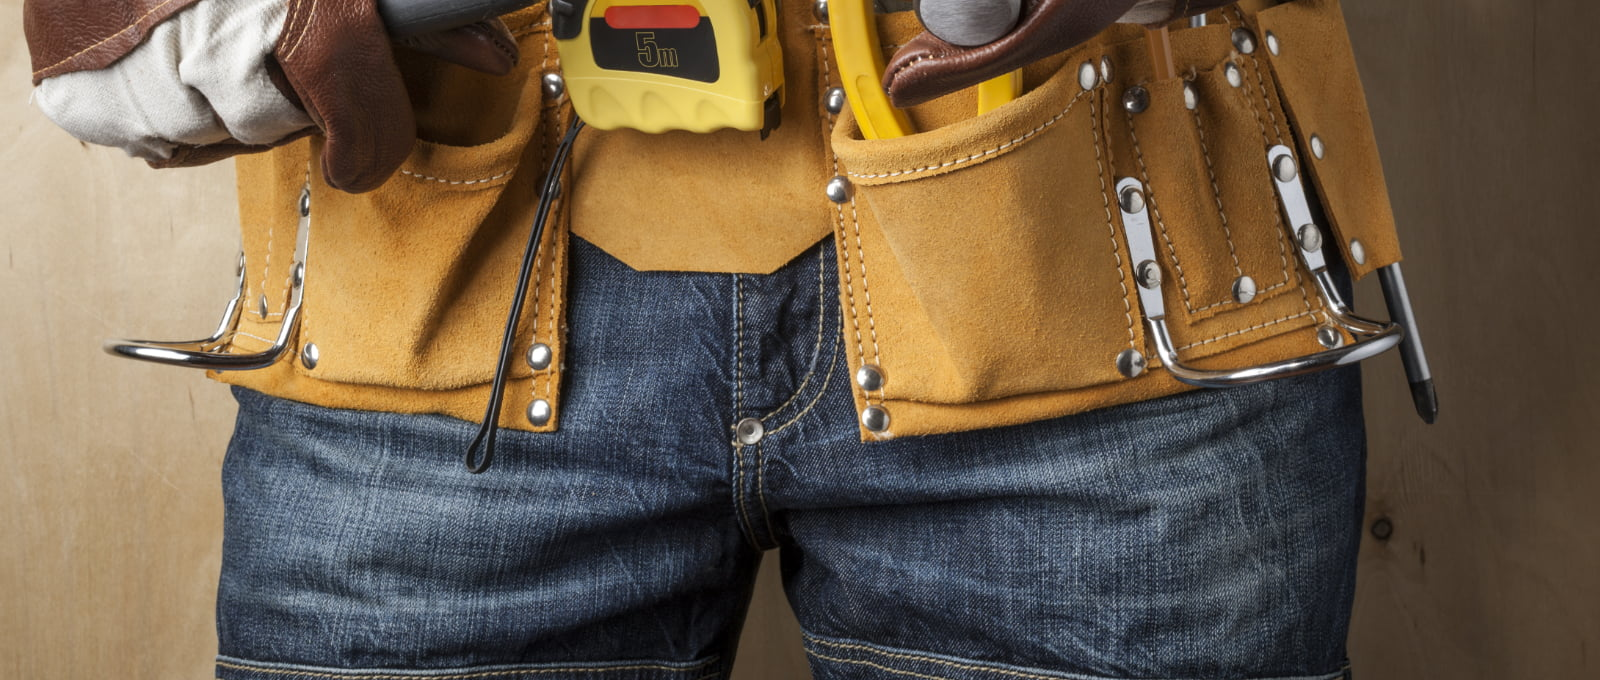 professional in jeans with work tools